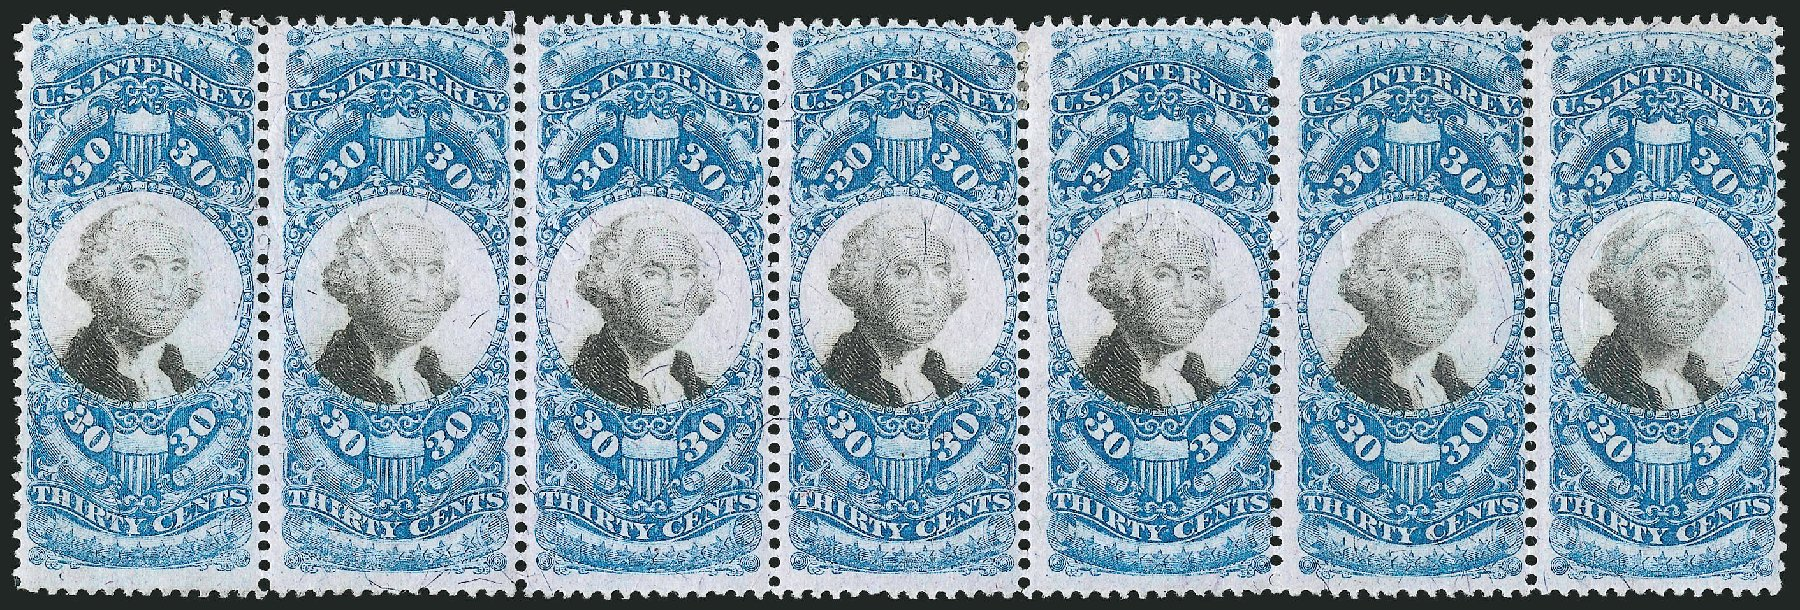 US Stamp Values Scott Catalogue #R113: 30c 1871 Revenue Documentary . Robert Siegel Auction Galleries, Jun 2015, Sale 1100, Lot 178